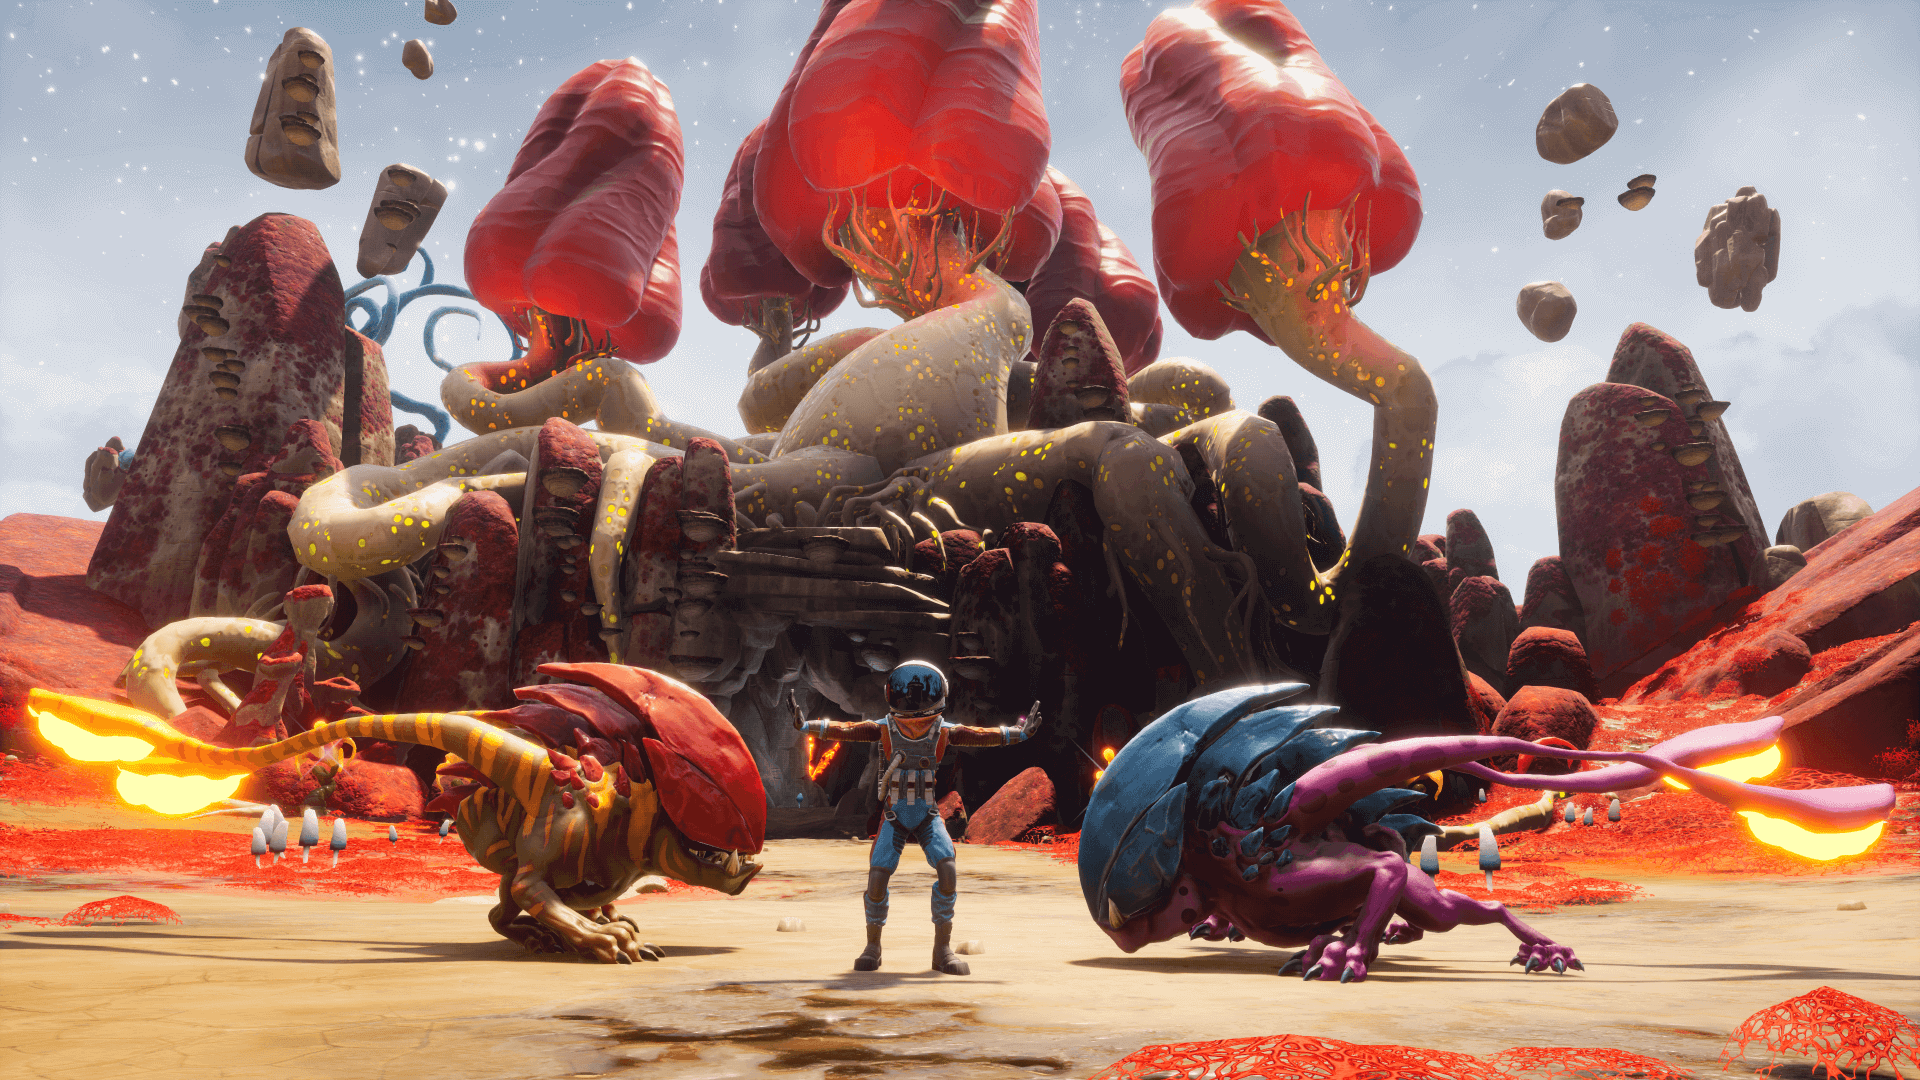 'Journey to the Savage Planet' developers reform after Google shut them down